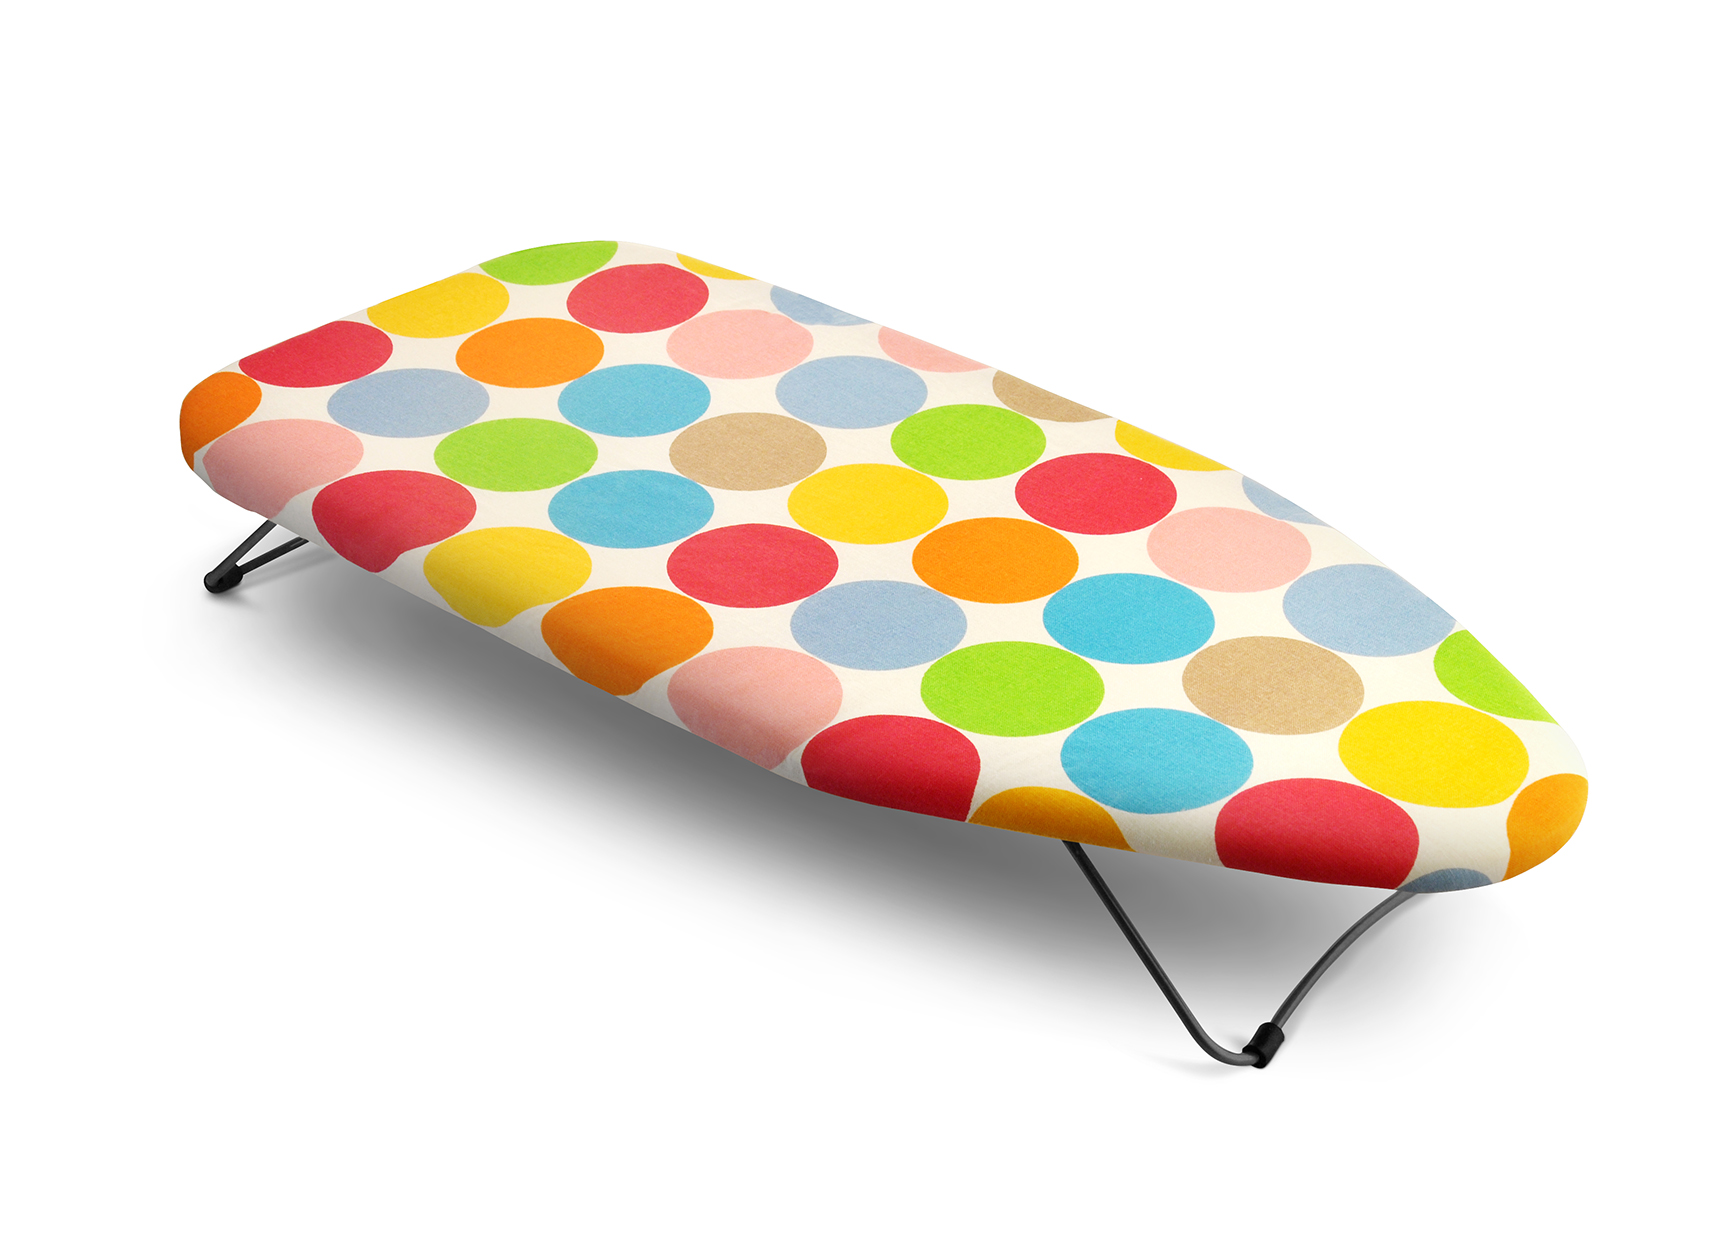 For space savers home utility products maker bonita brings mini table top ironing board - Ironing board for small spaces decor ...